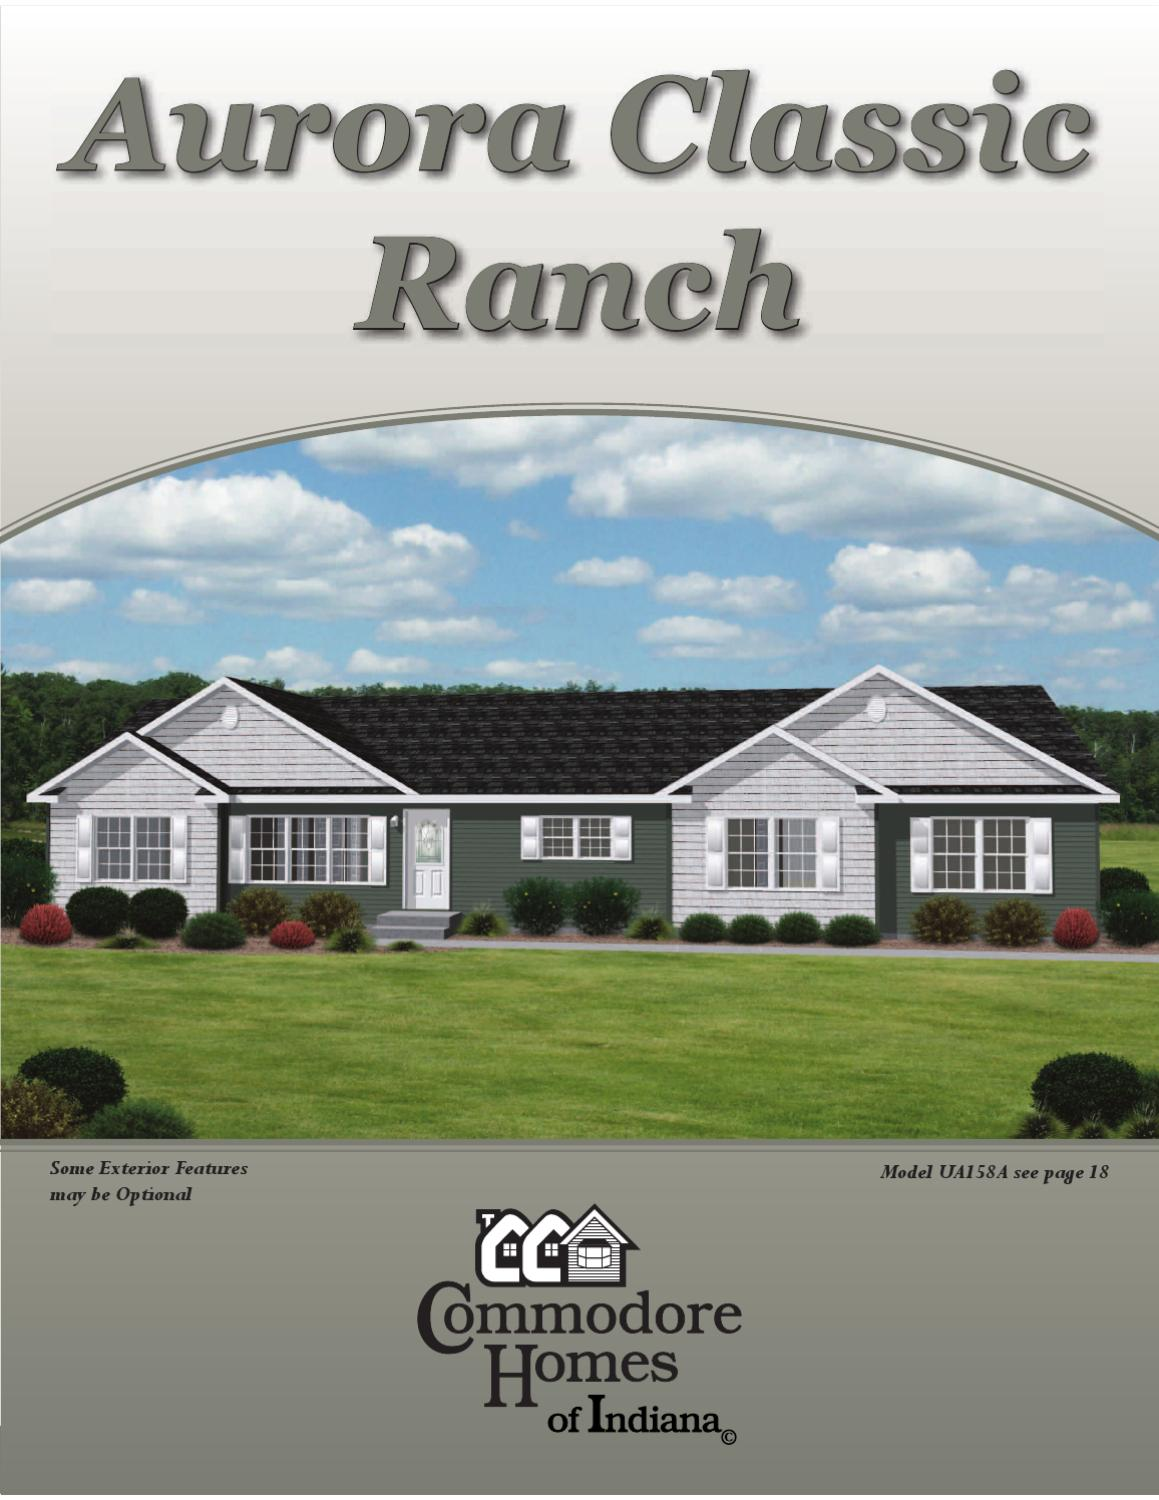 Aurora Classic Ranch (HUD Code) by The Commodore Corporation - issuu